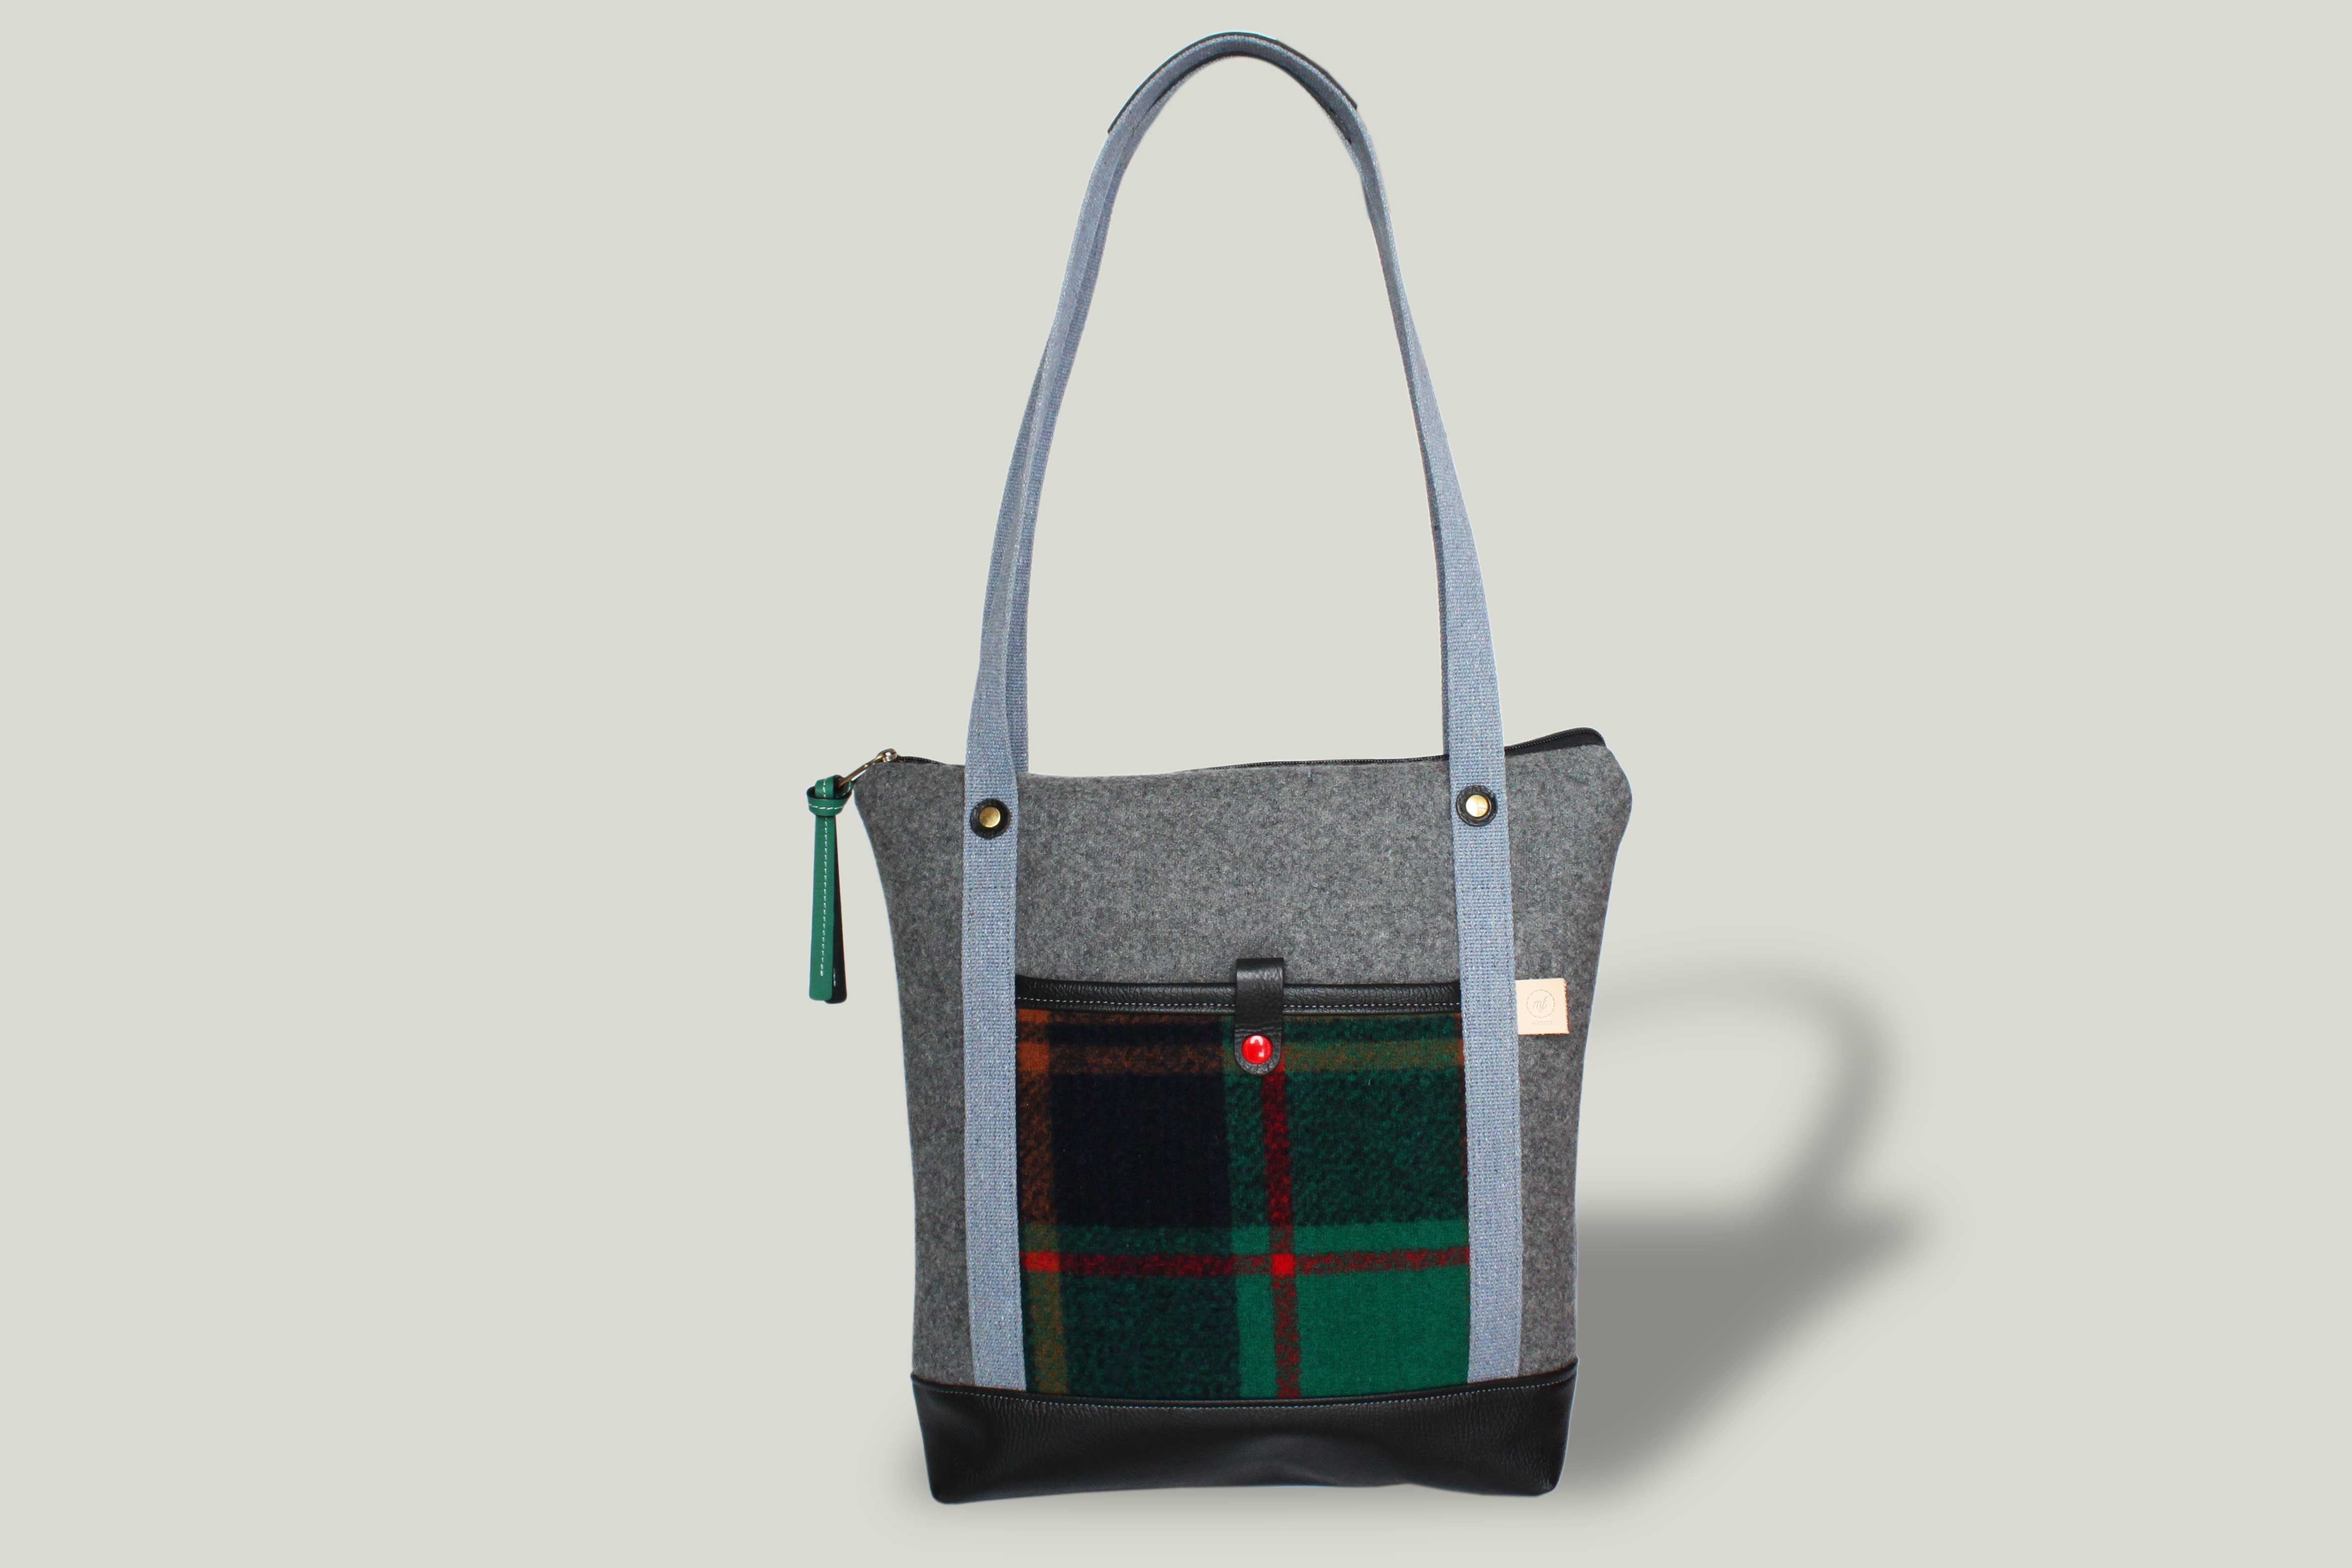 NO. 14 | TOTE BAG - GREY & GREEN